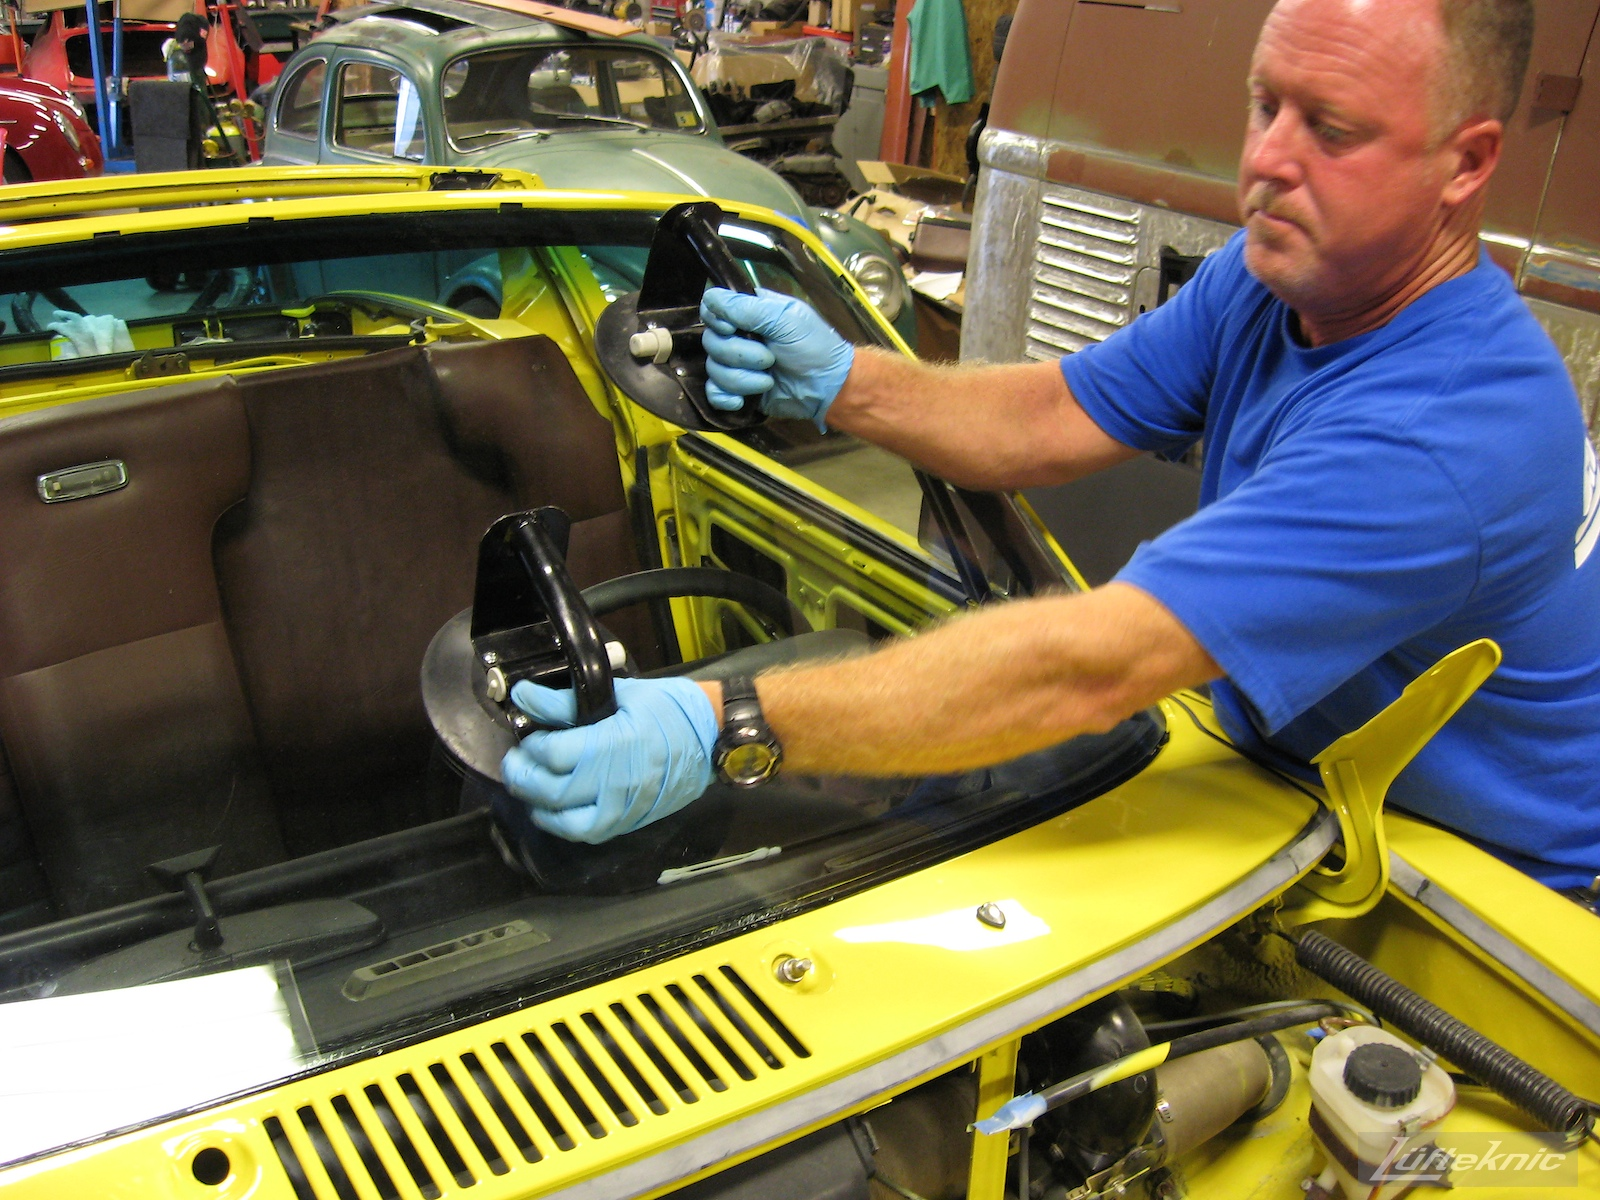 Installing the windshield into a restored yellow Porsche 914 at Lufteknic.